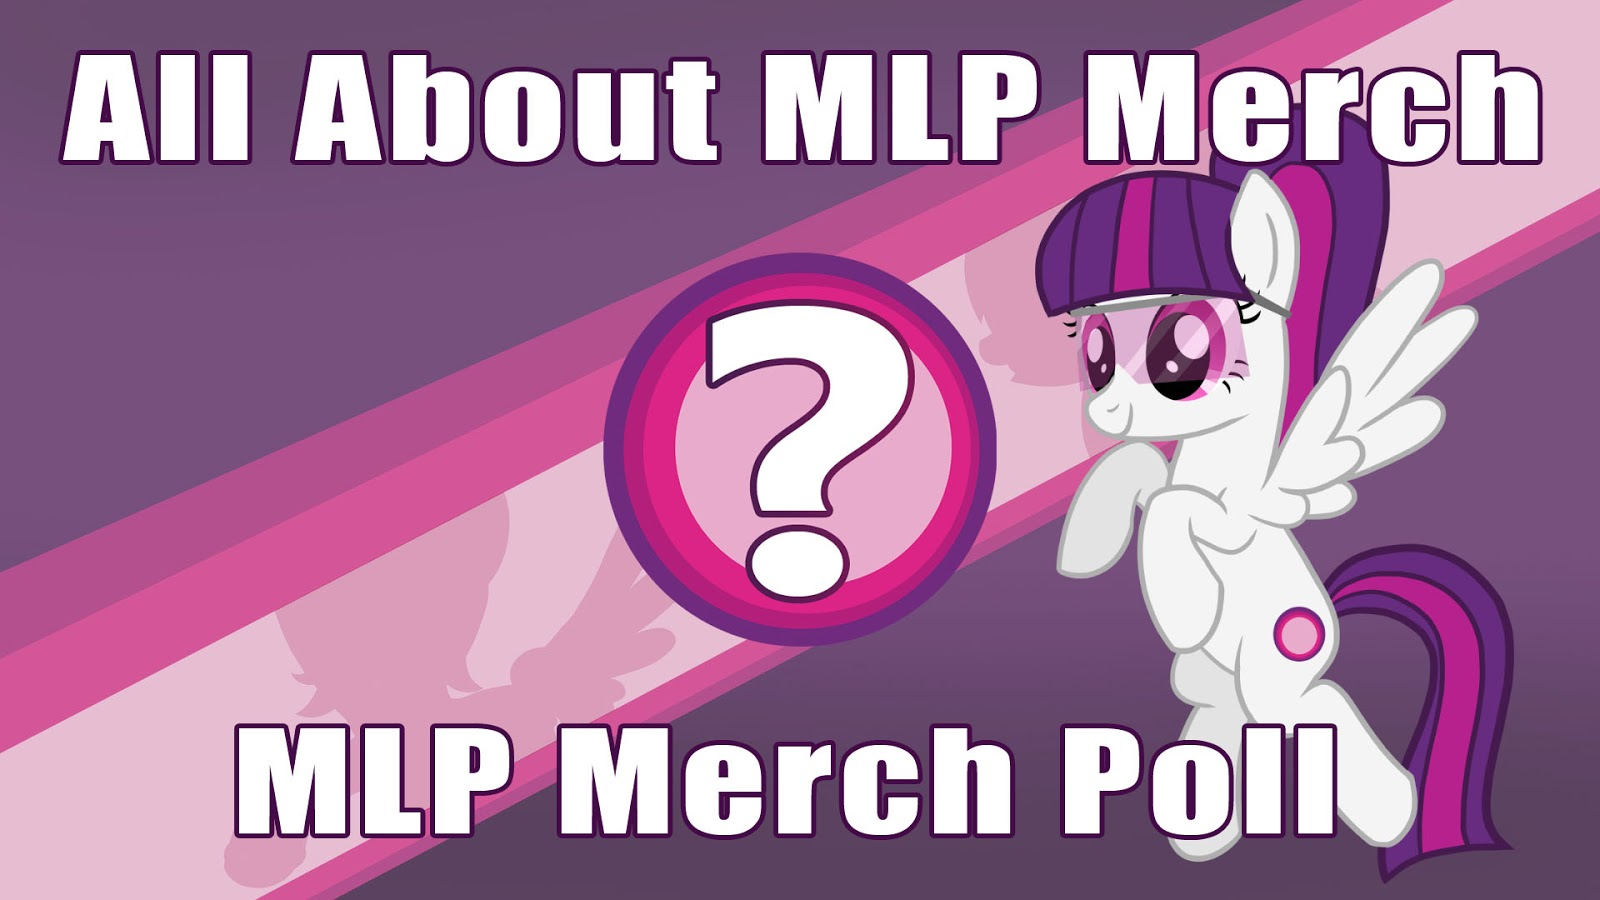 MLP Merch Poll